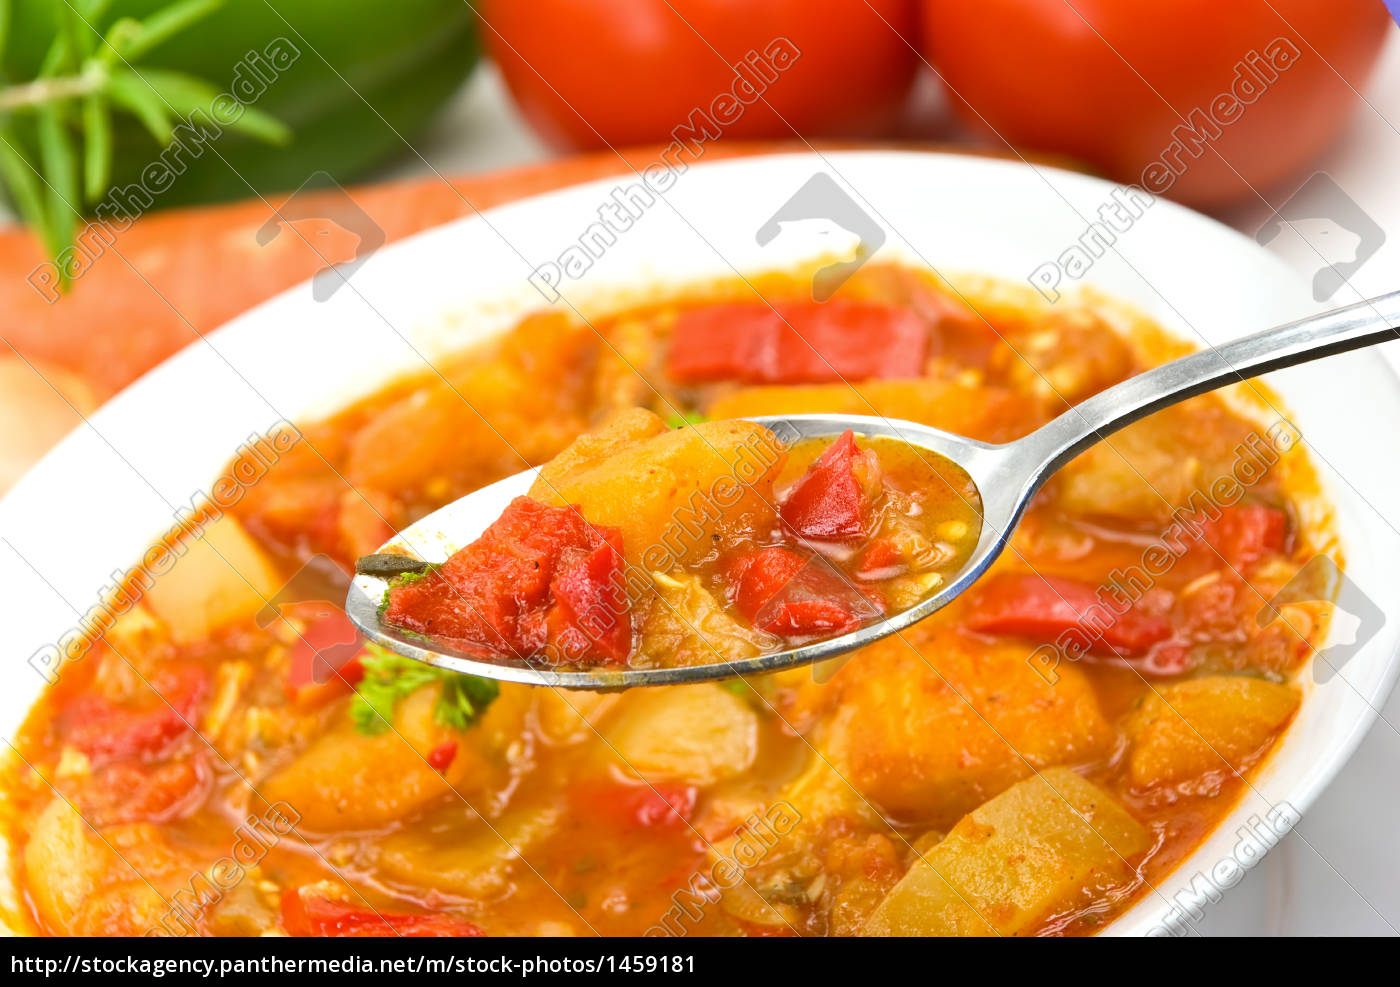 vegetable, soup, -auflauf - 1459181